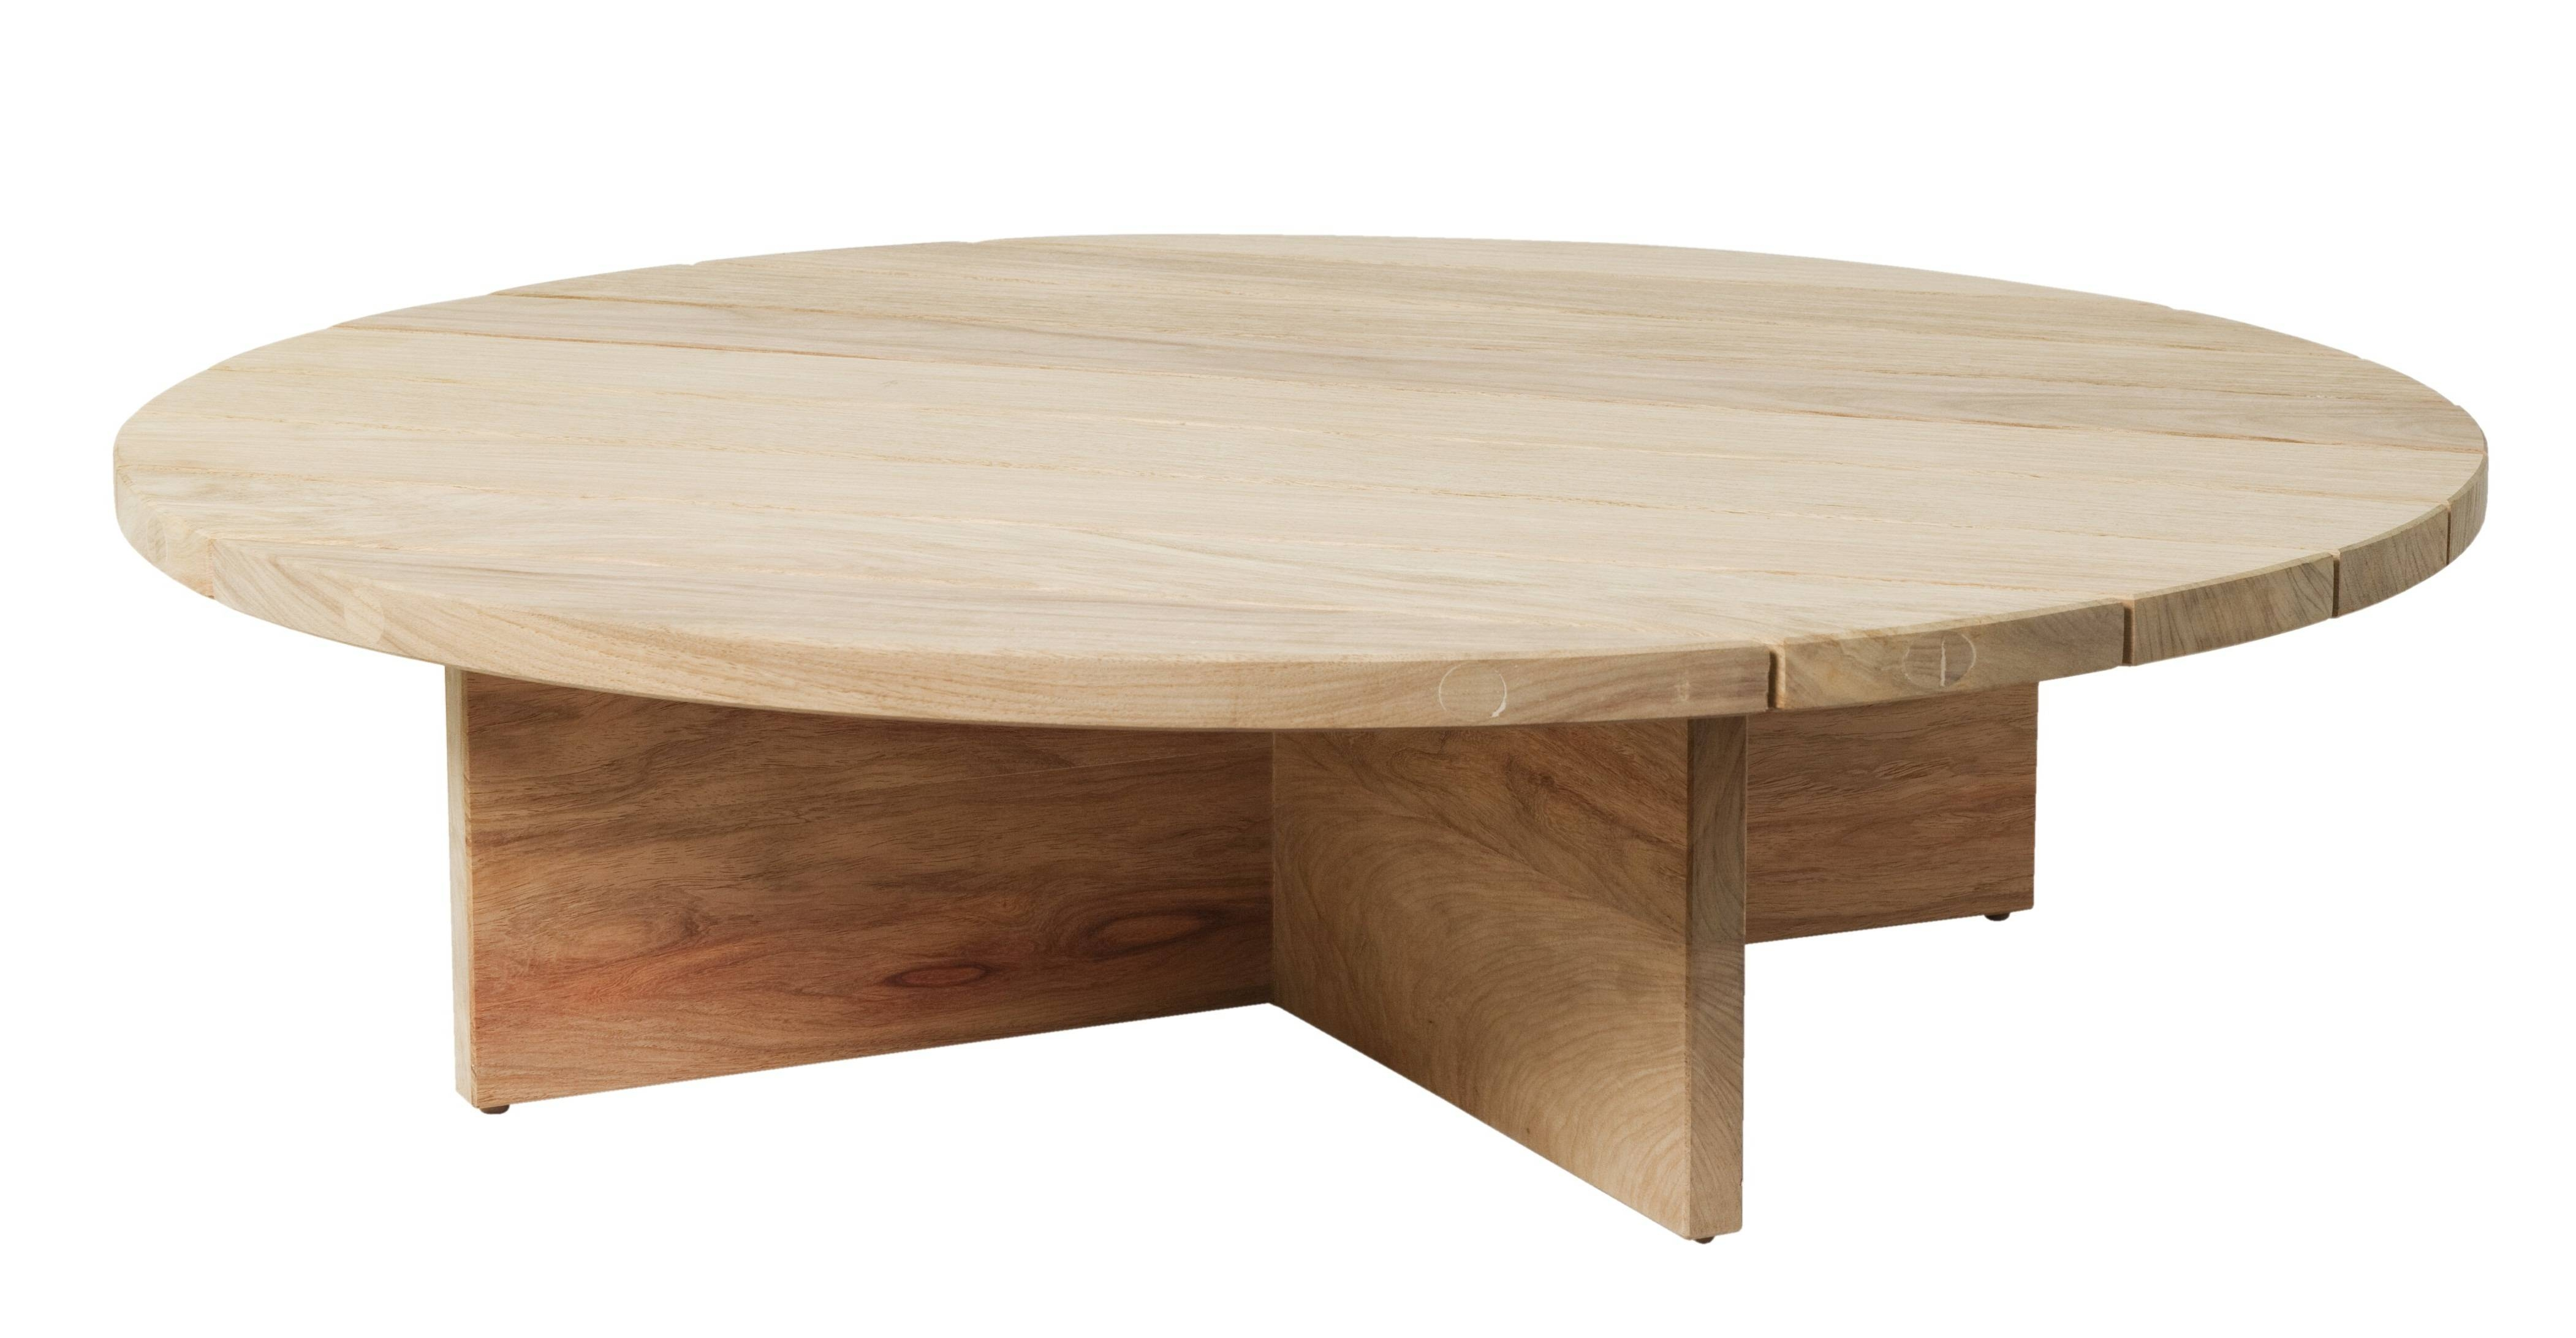 Timber Round Wooden Coffee Table Simple Design – Side Tables For pertaining to Chunky Coffee Tables (Image 22 of 30)